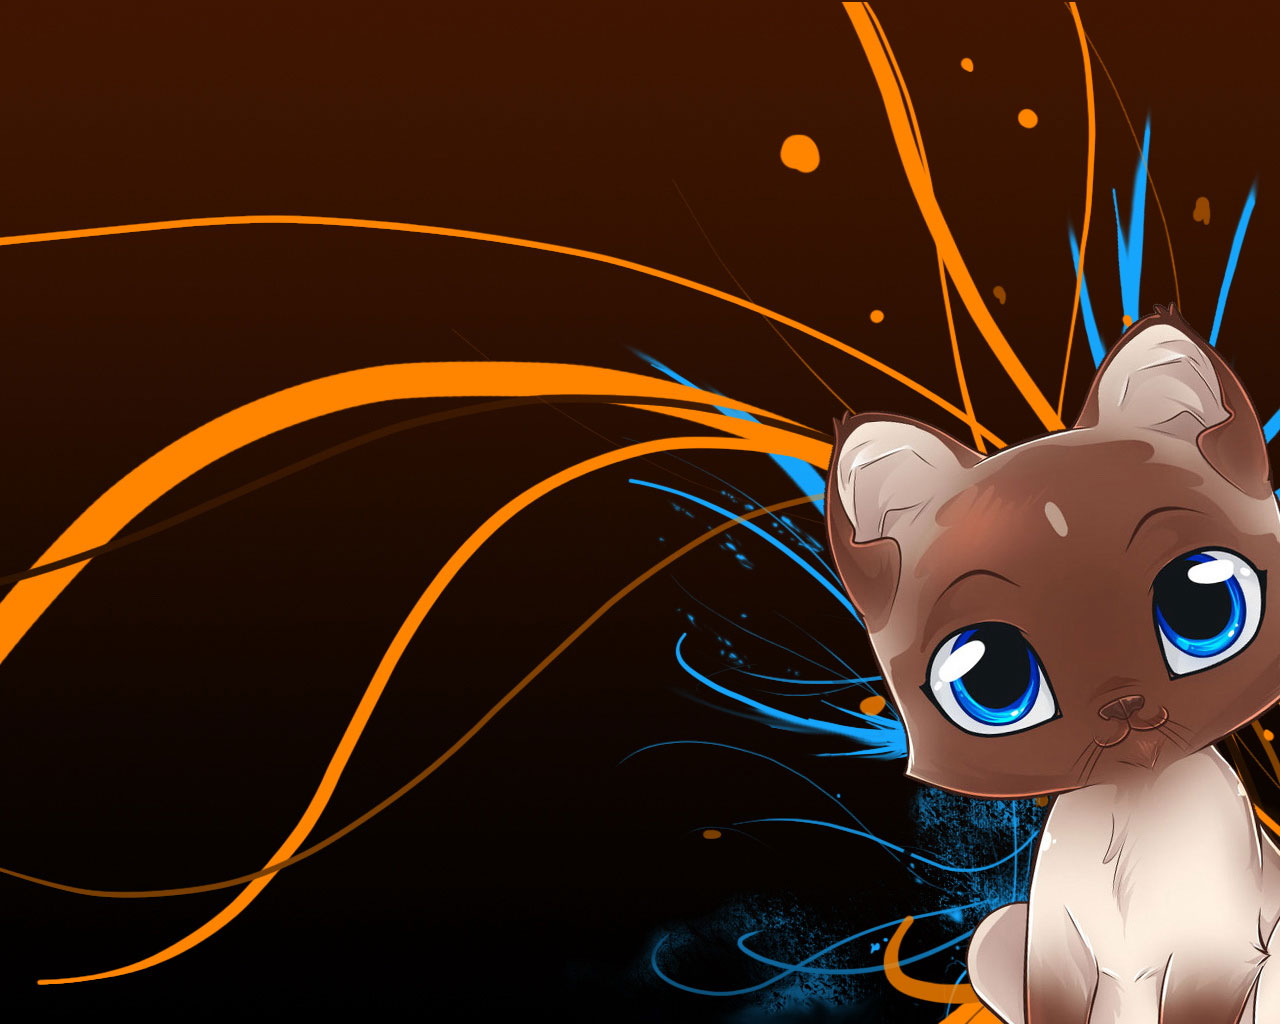 cartoon wallpapers anime wallpaper - photo #43